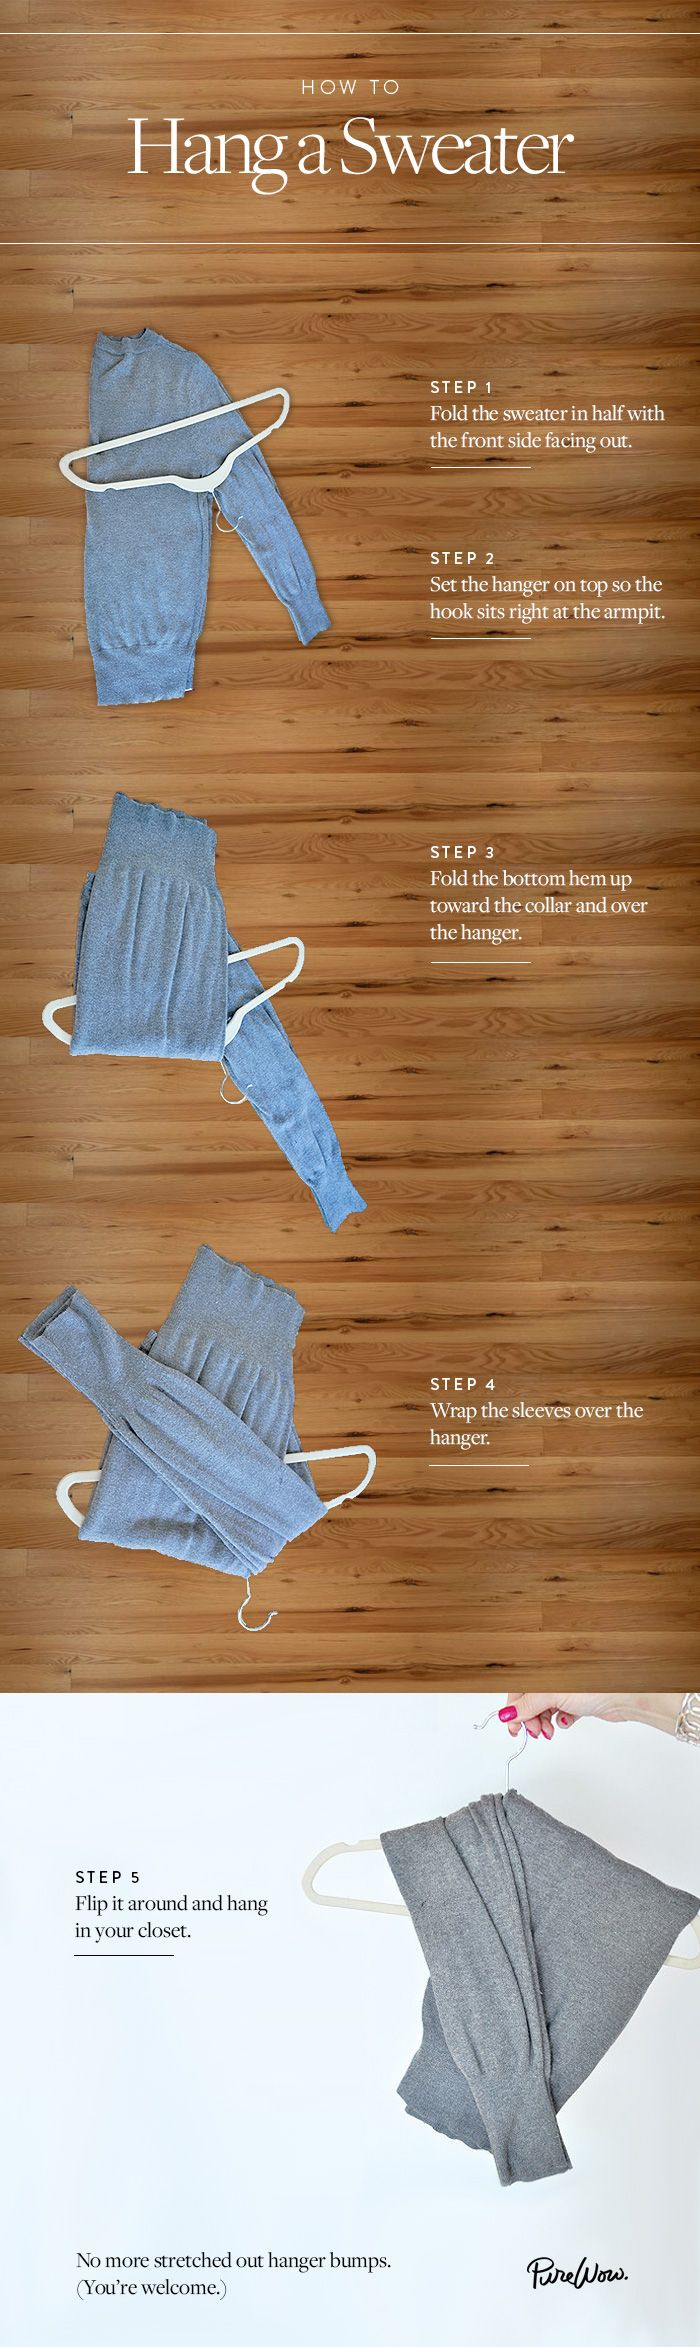 Do your sweaters always stretch out at the shoulders when you hang them on your hangers? Even when you use those fancy padded hangers? Well, here's the perfect solution for you! No more sagging shoulders on your sweaters. : )